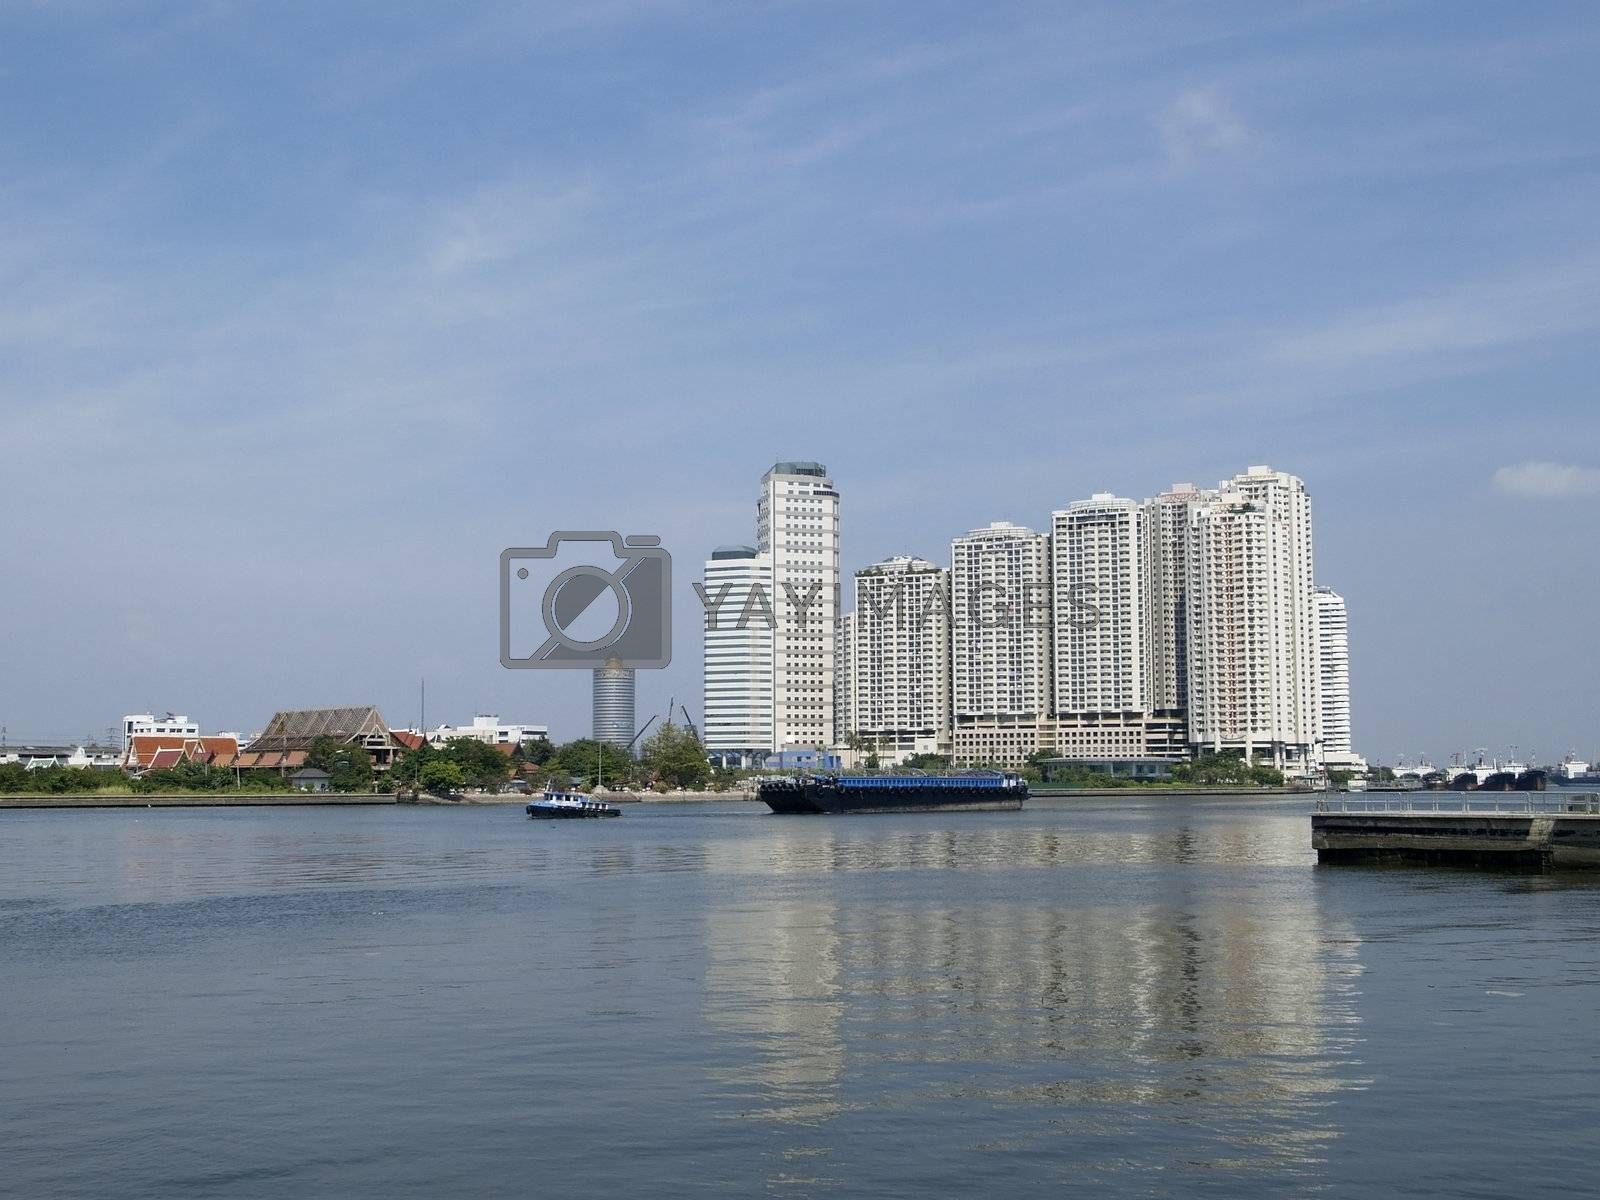 Apartments by the river by epixx